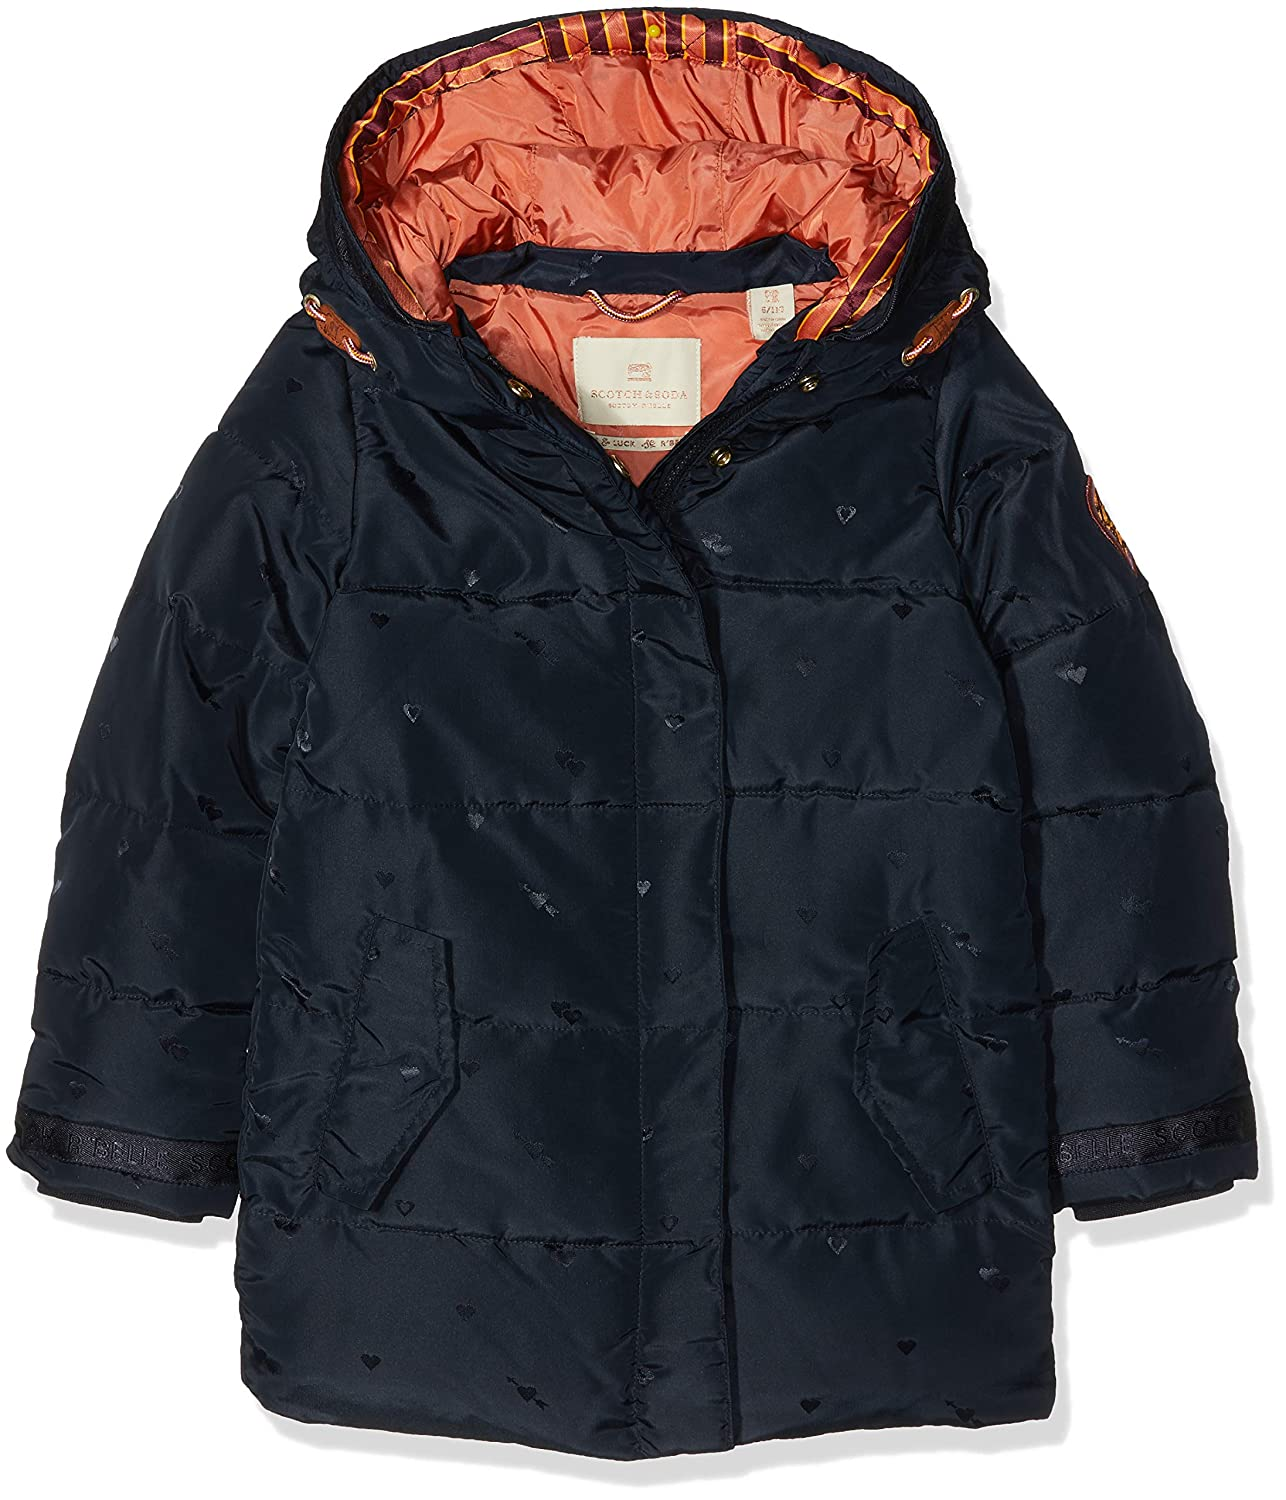 Bleu (Night 002)  Scotch & Soda Padded Jaquard veste with Double Hood Construction Blouson Fille